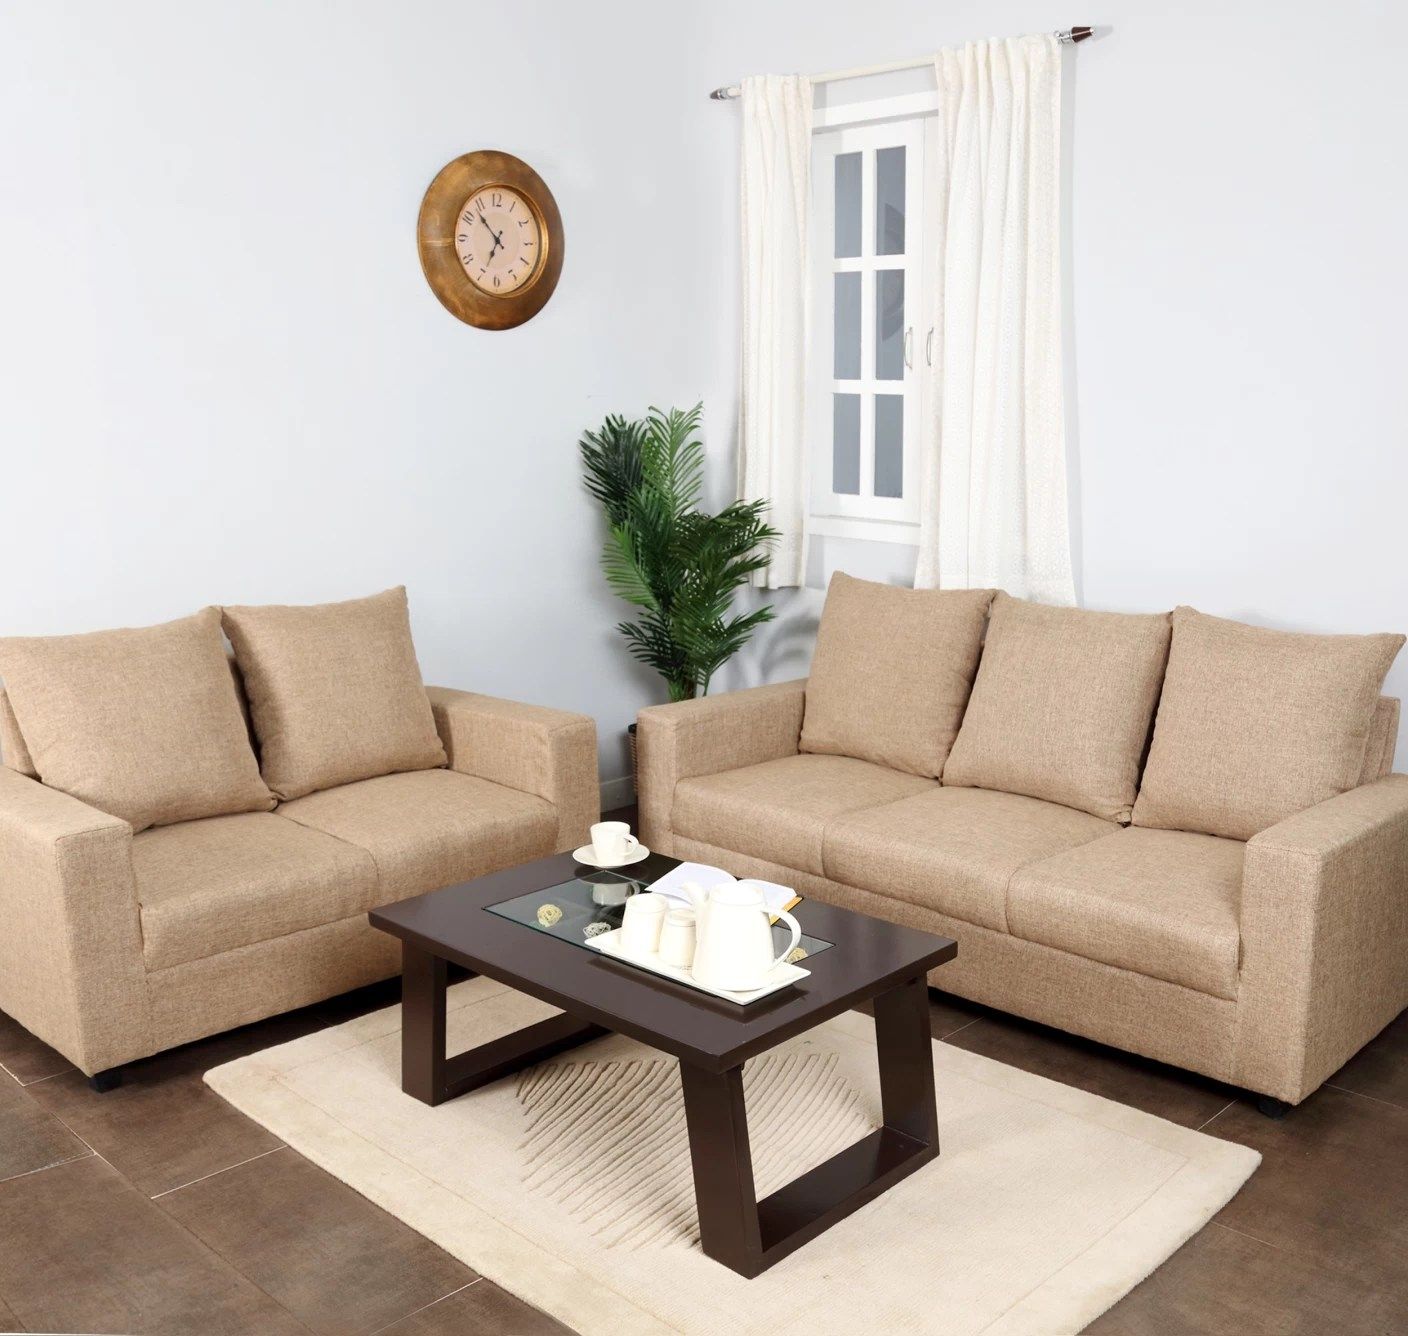 R K Sofa Set Rajkot Gujarat Furnicity Fabric 3 43 2 Beige Sofa Set Price In India Buy